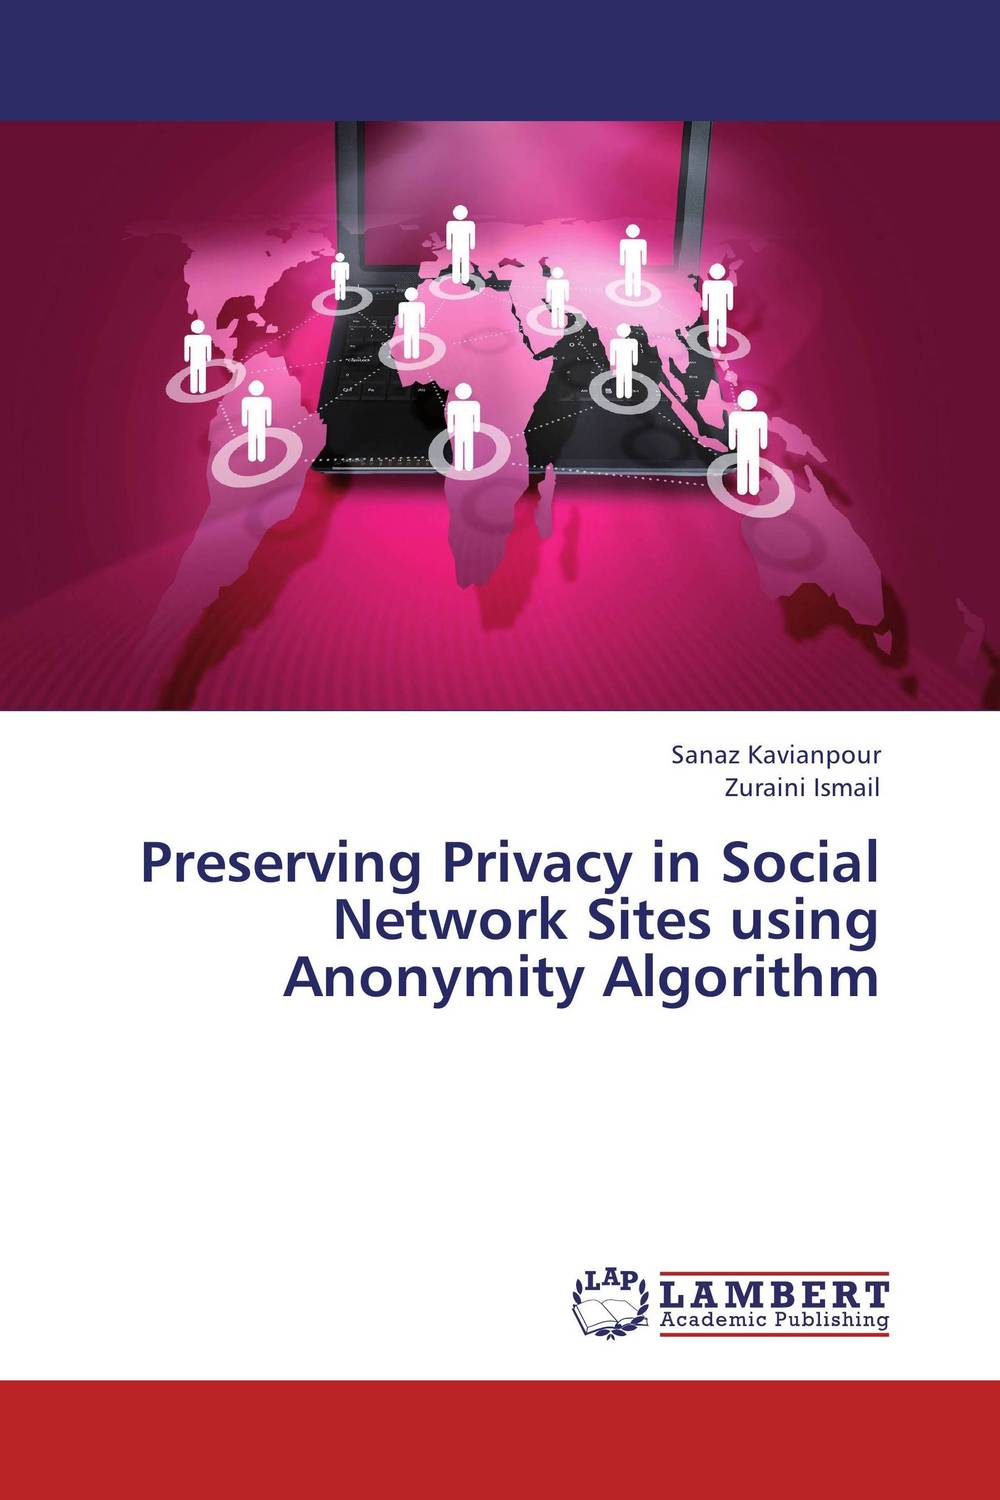 Preserving Privacy in Social Network Sites using Anonymity Algorithm